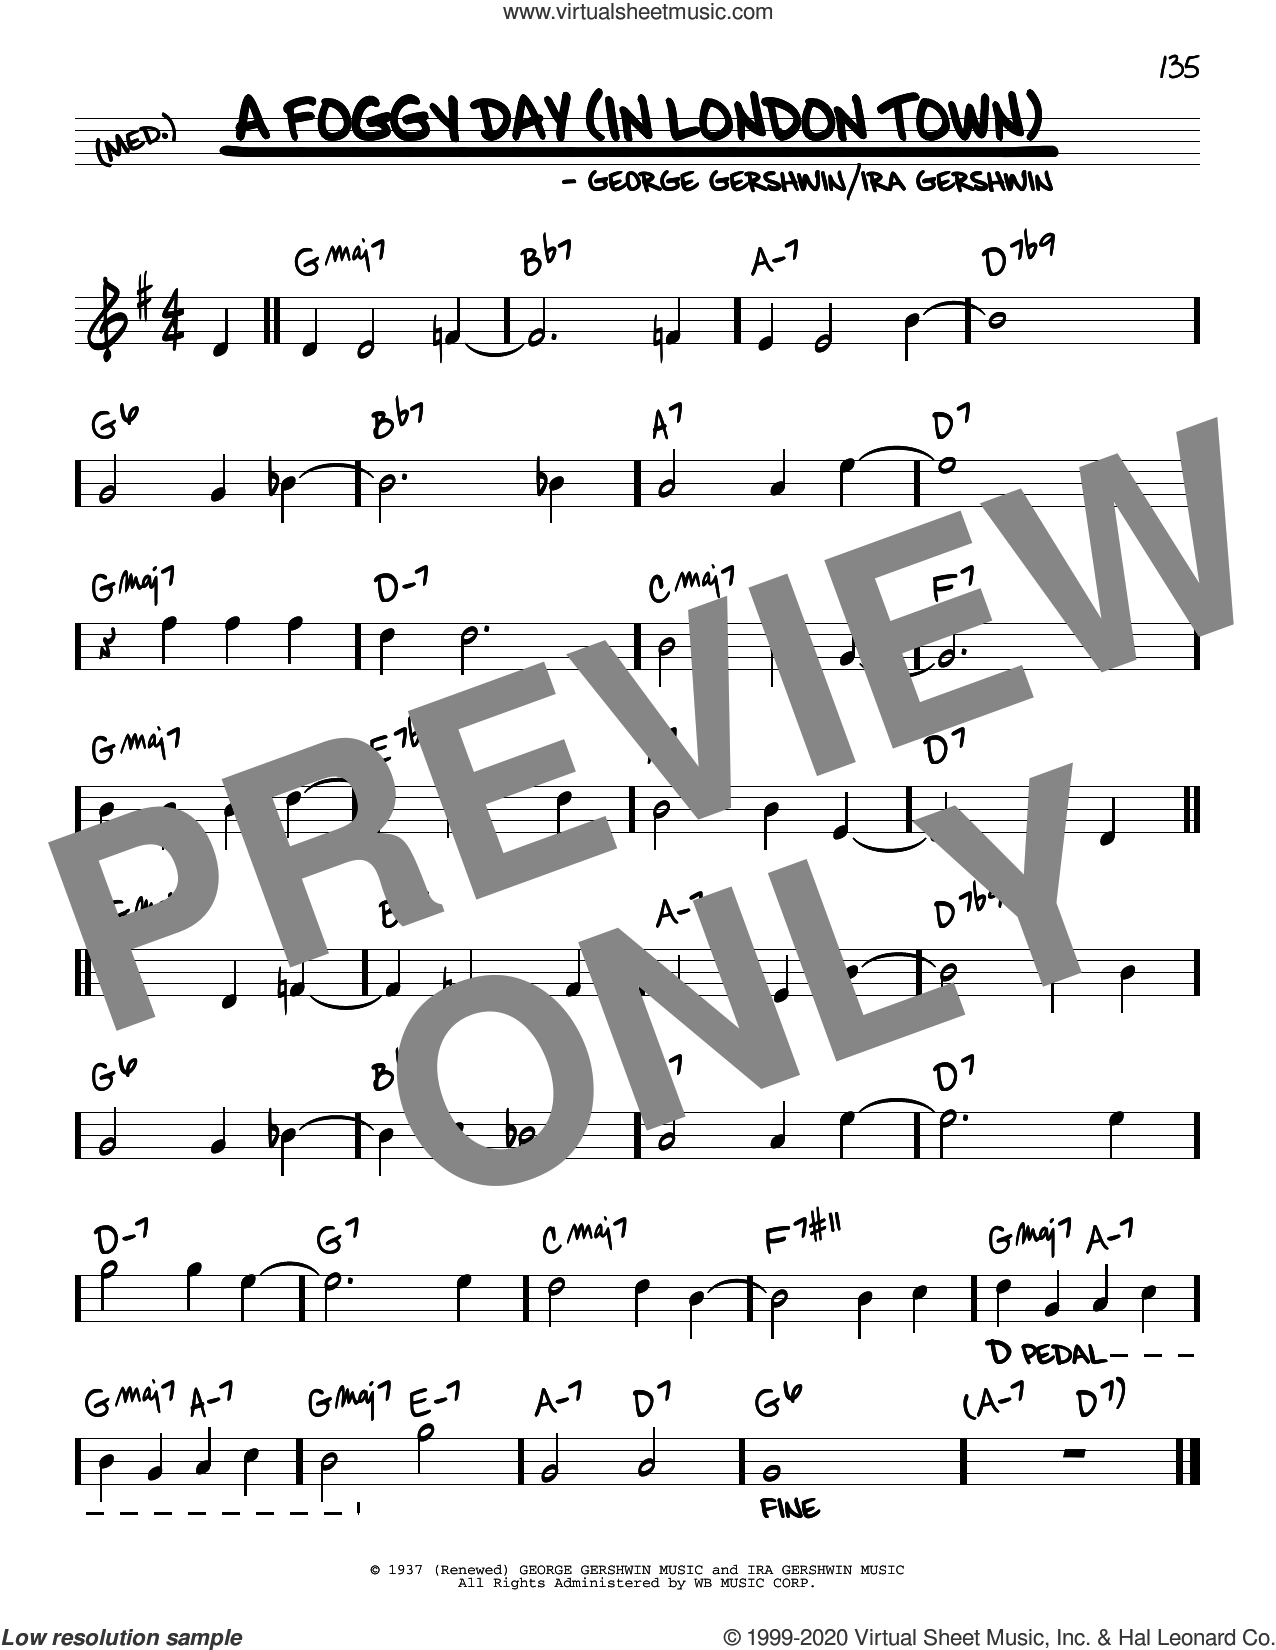 A Foggy Day (In London Town) sheet music for voice and other instruments (real book) by George Gershwin and Ira Gershwin, intermediate skill level